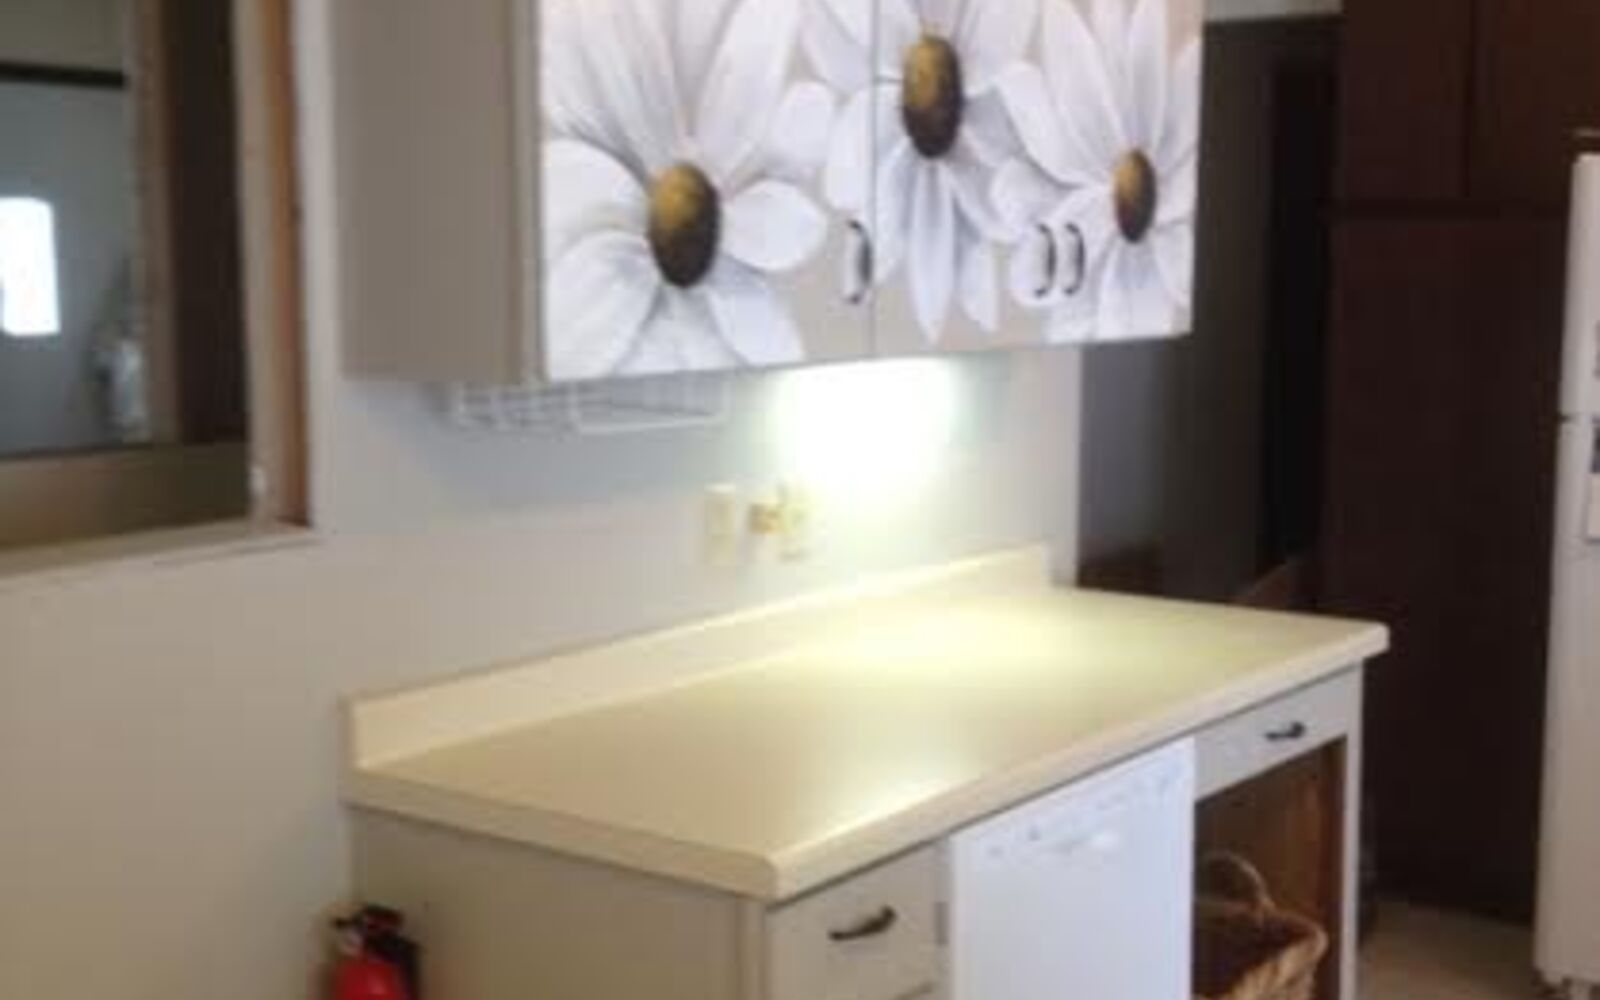 s 31 update ideas to make your kitchen look fabulous, Or add some art to your cabinets